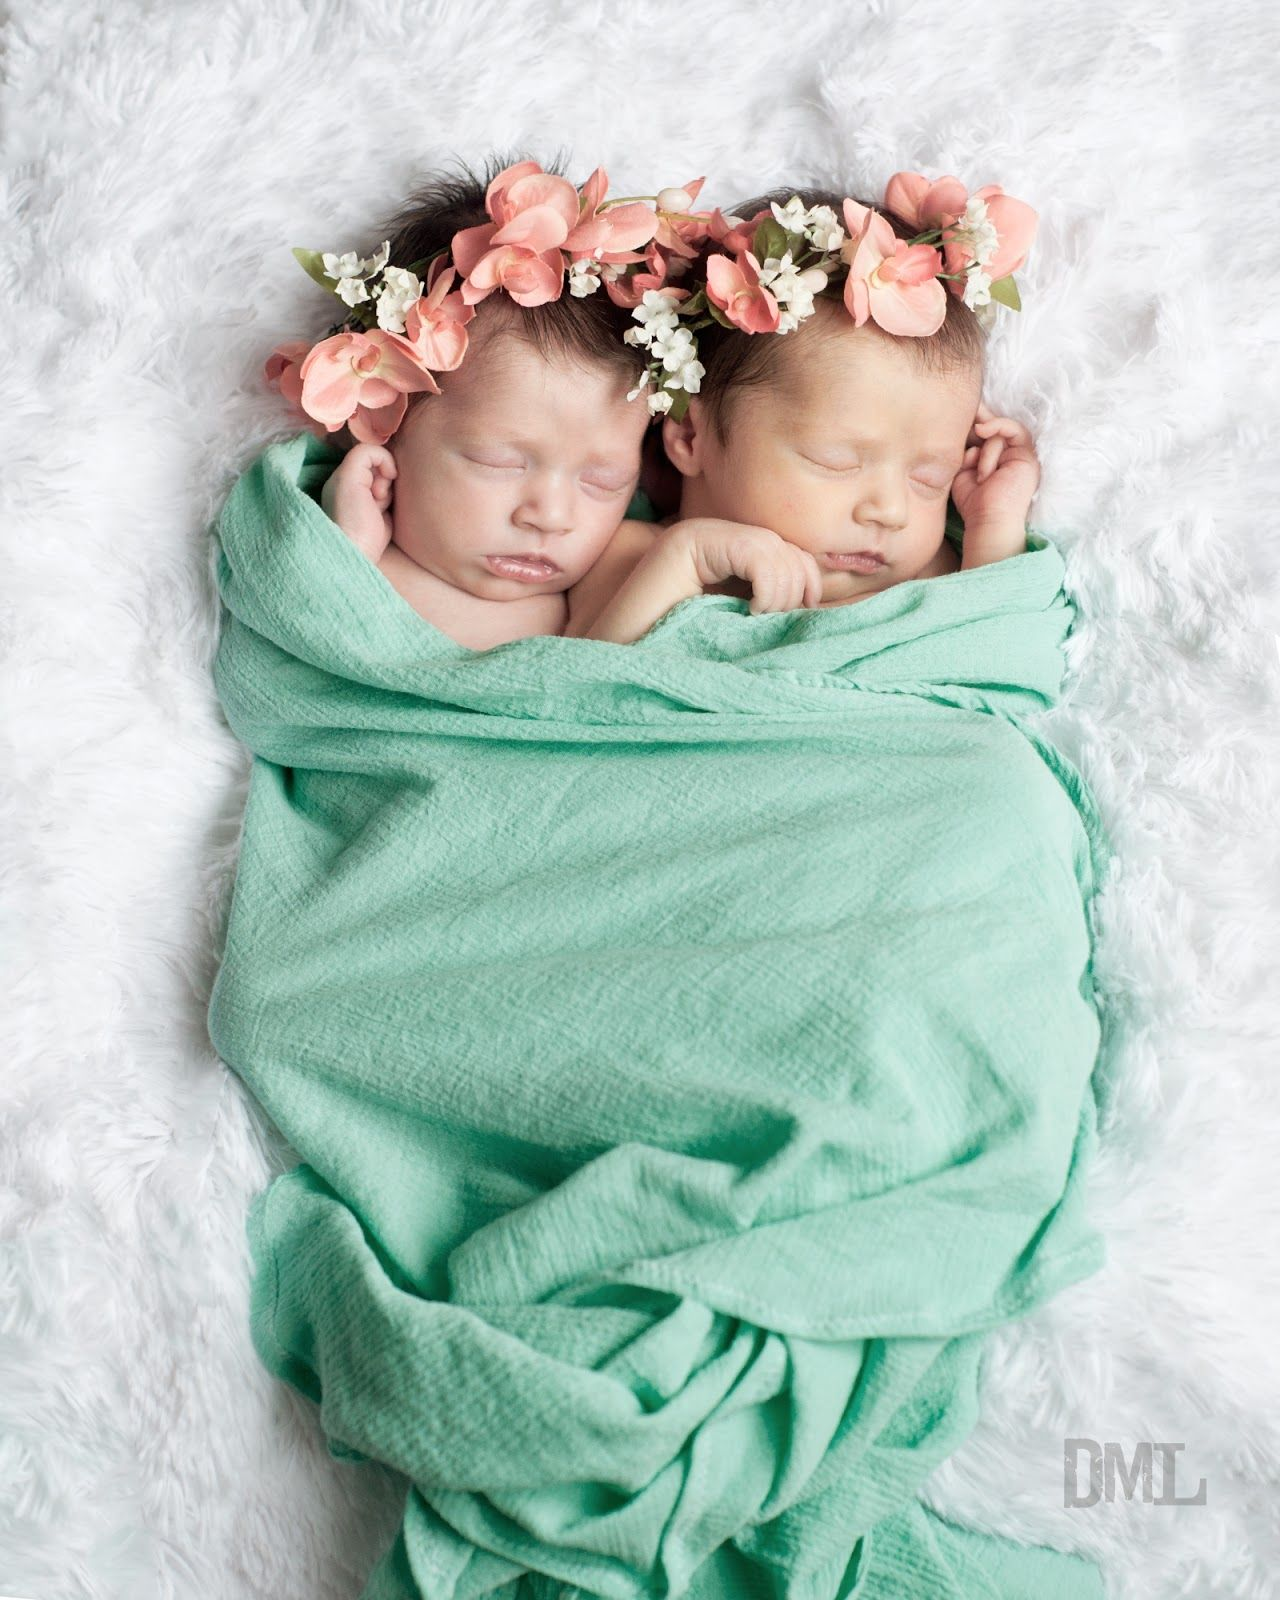 identical twin newborn babies - photo #15